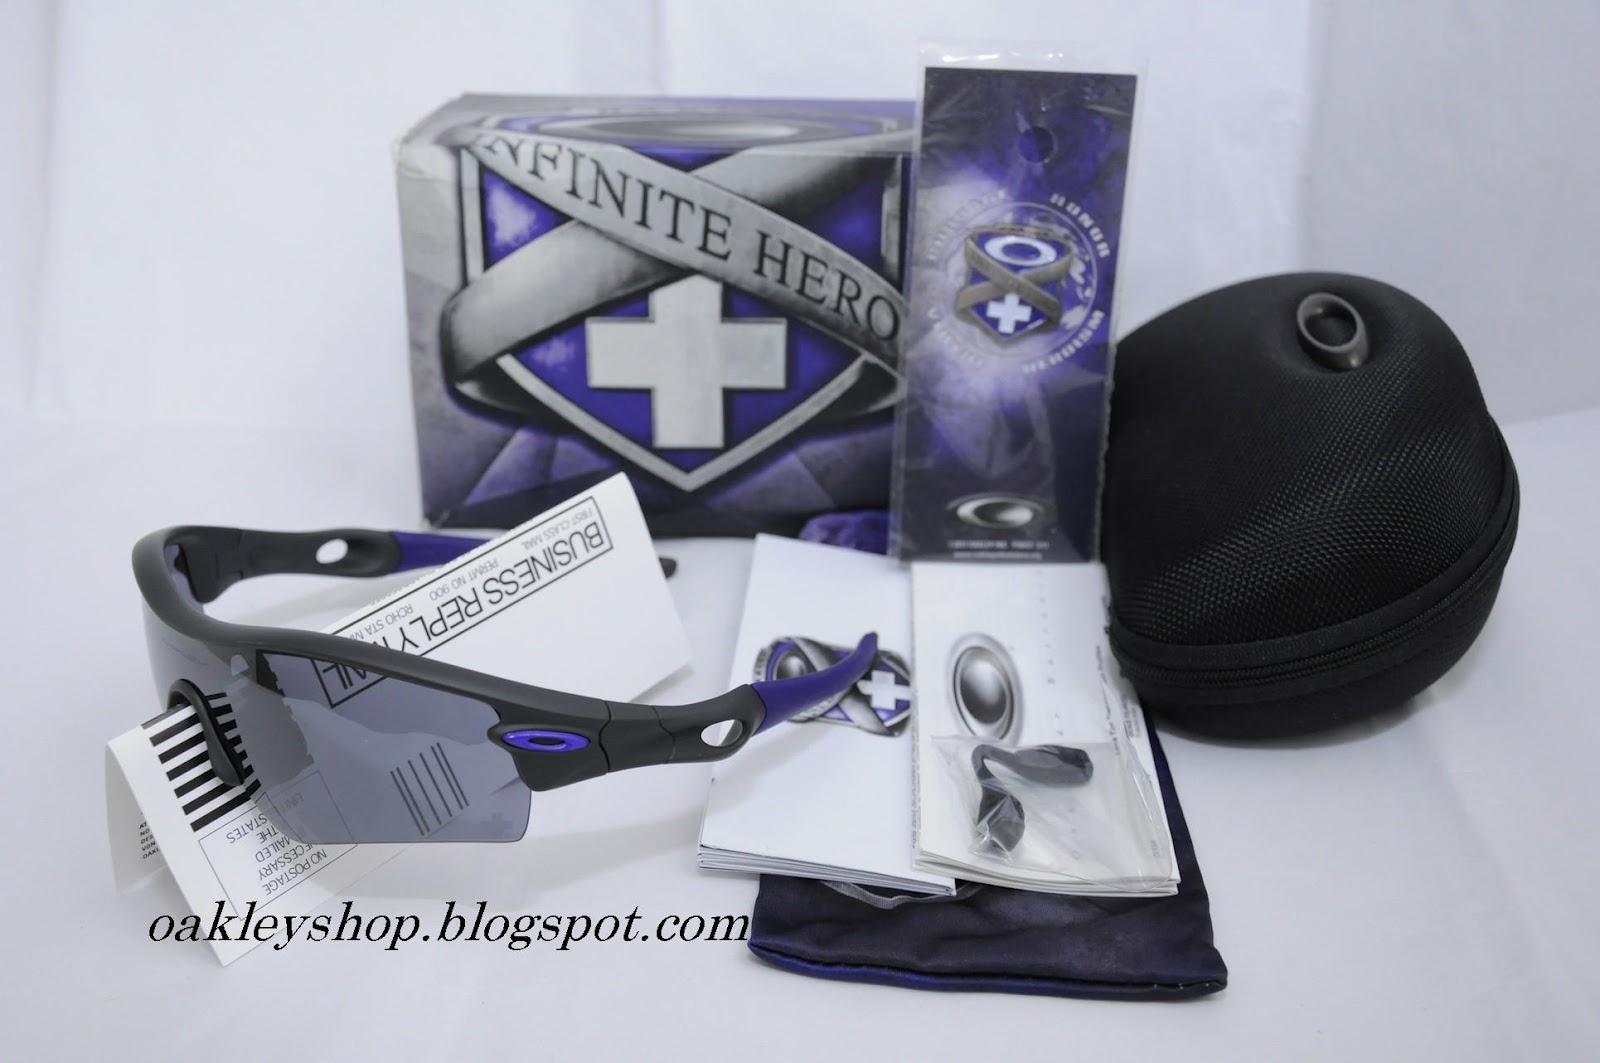 dcc054faff Oakley Infinite Hero Radar « One More Soul